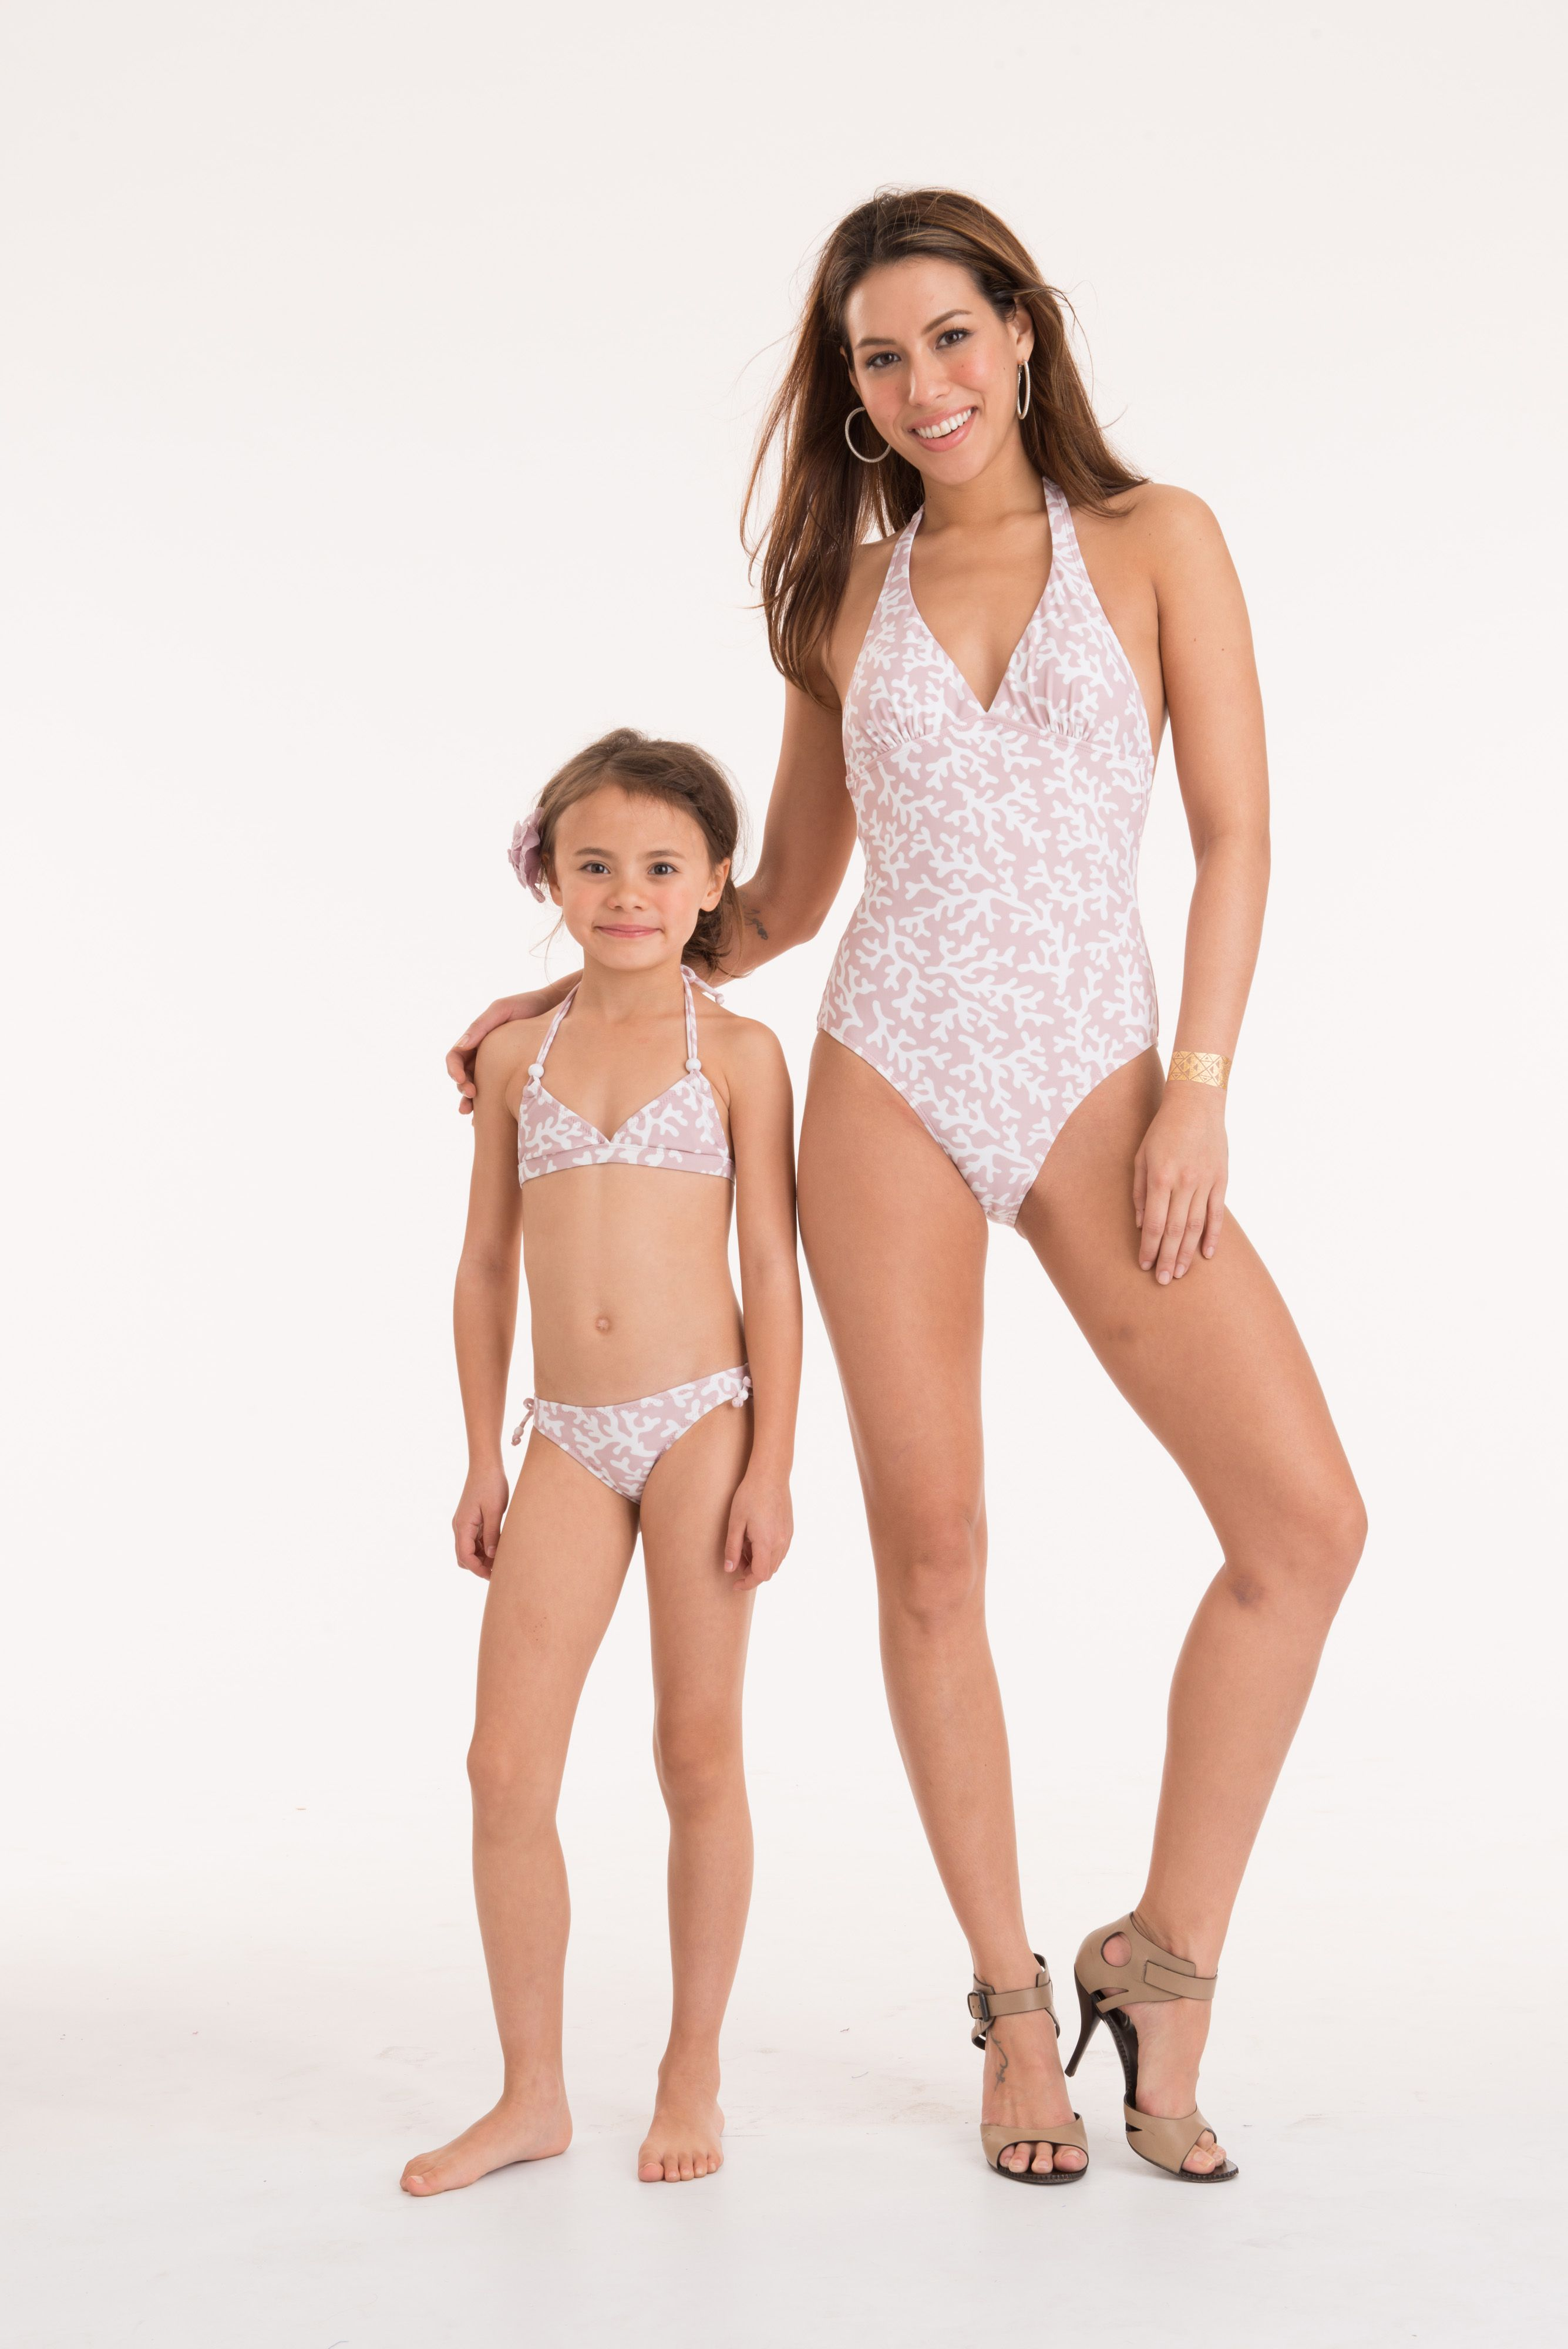 6ffea59e023 Matching swimwear for boys girl and adults! Coral Mauve&White print  from the 2015